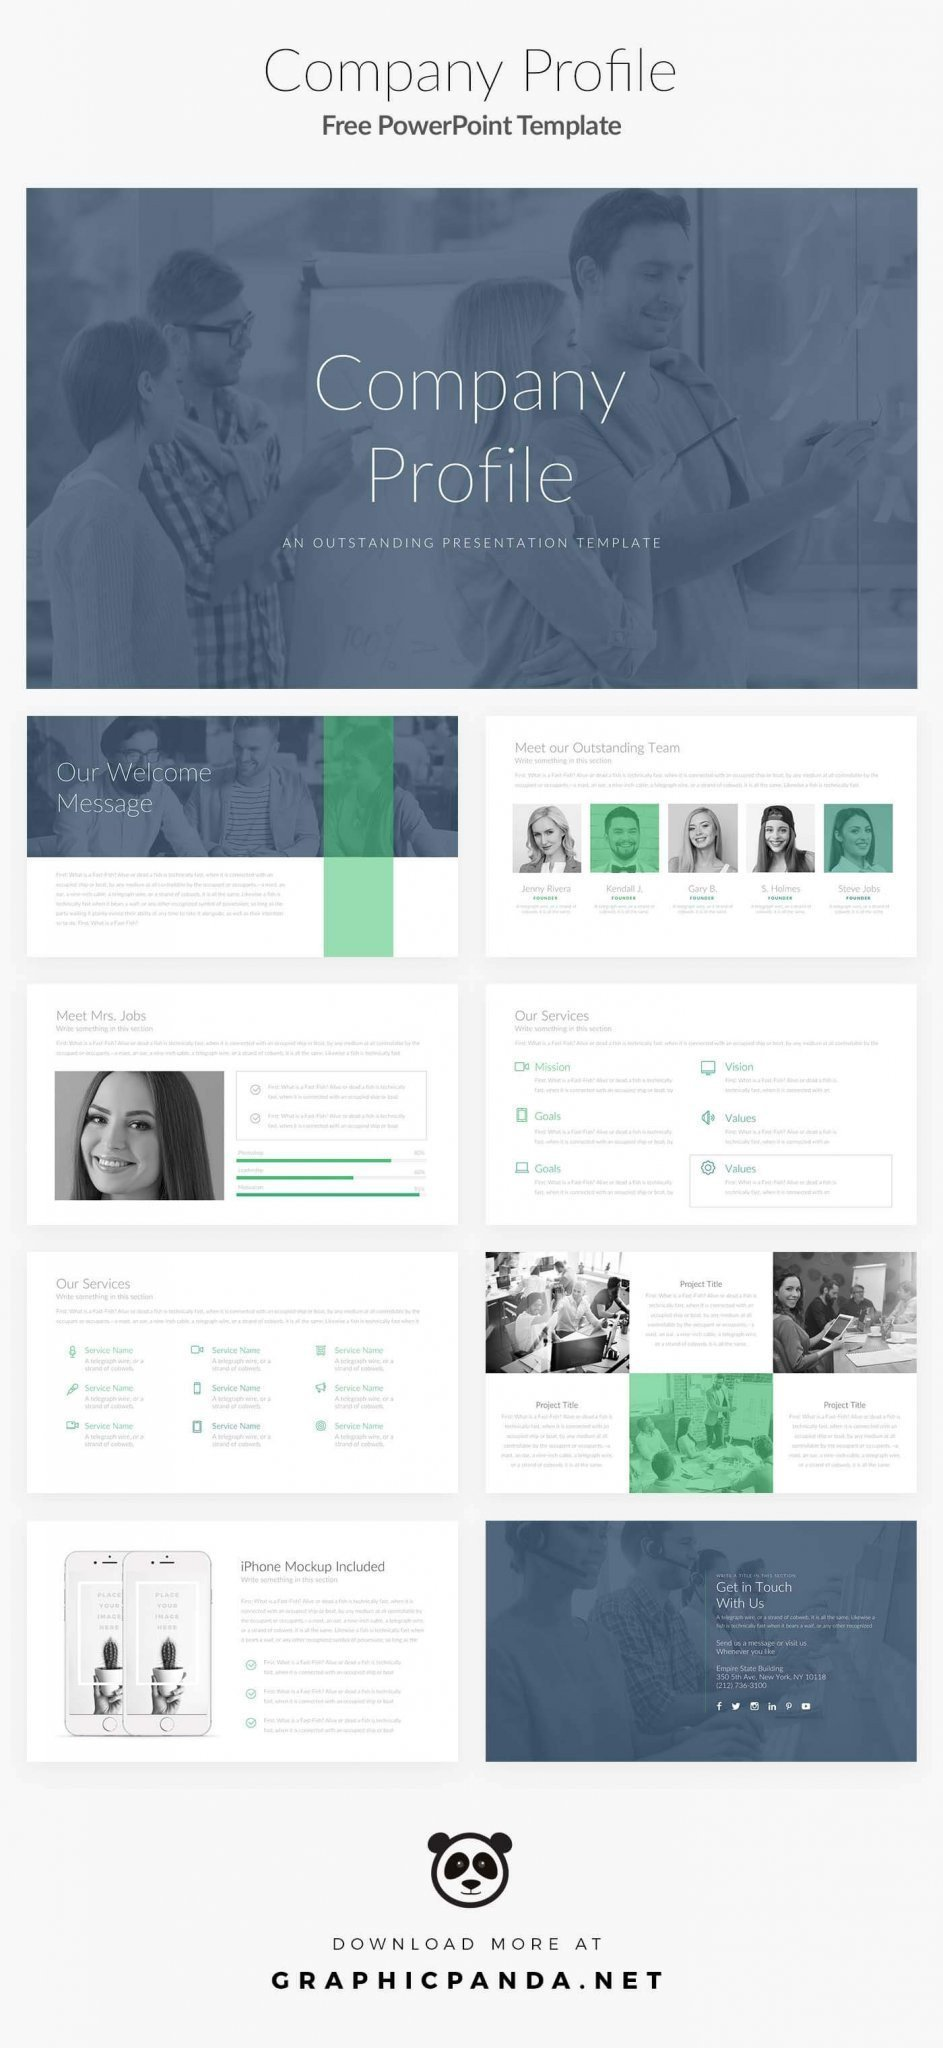 Powerpoint Presentation Outline Example the 86 Best Free Powerpoint Templates Of 2019 Updated